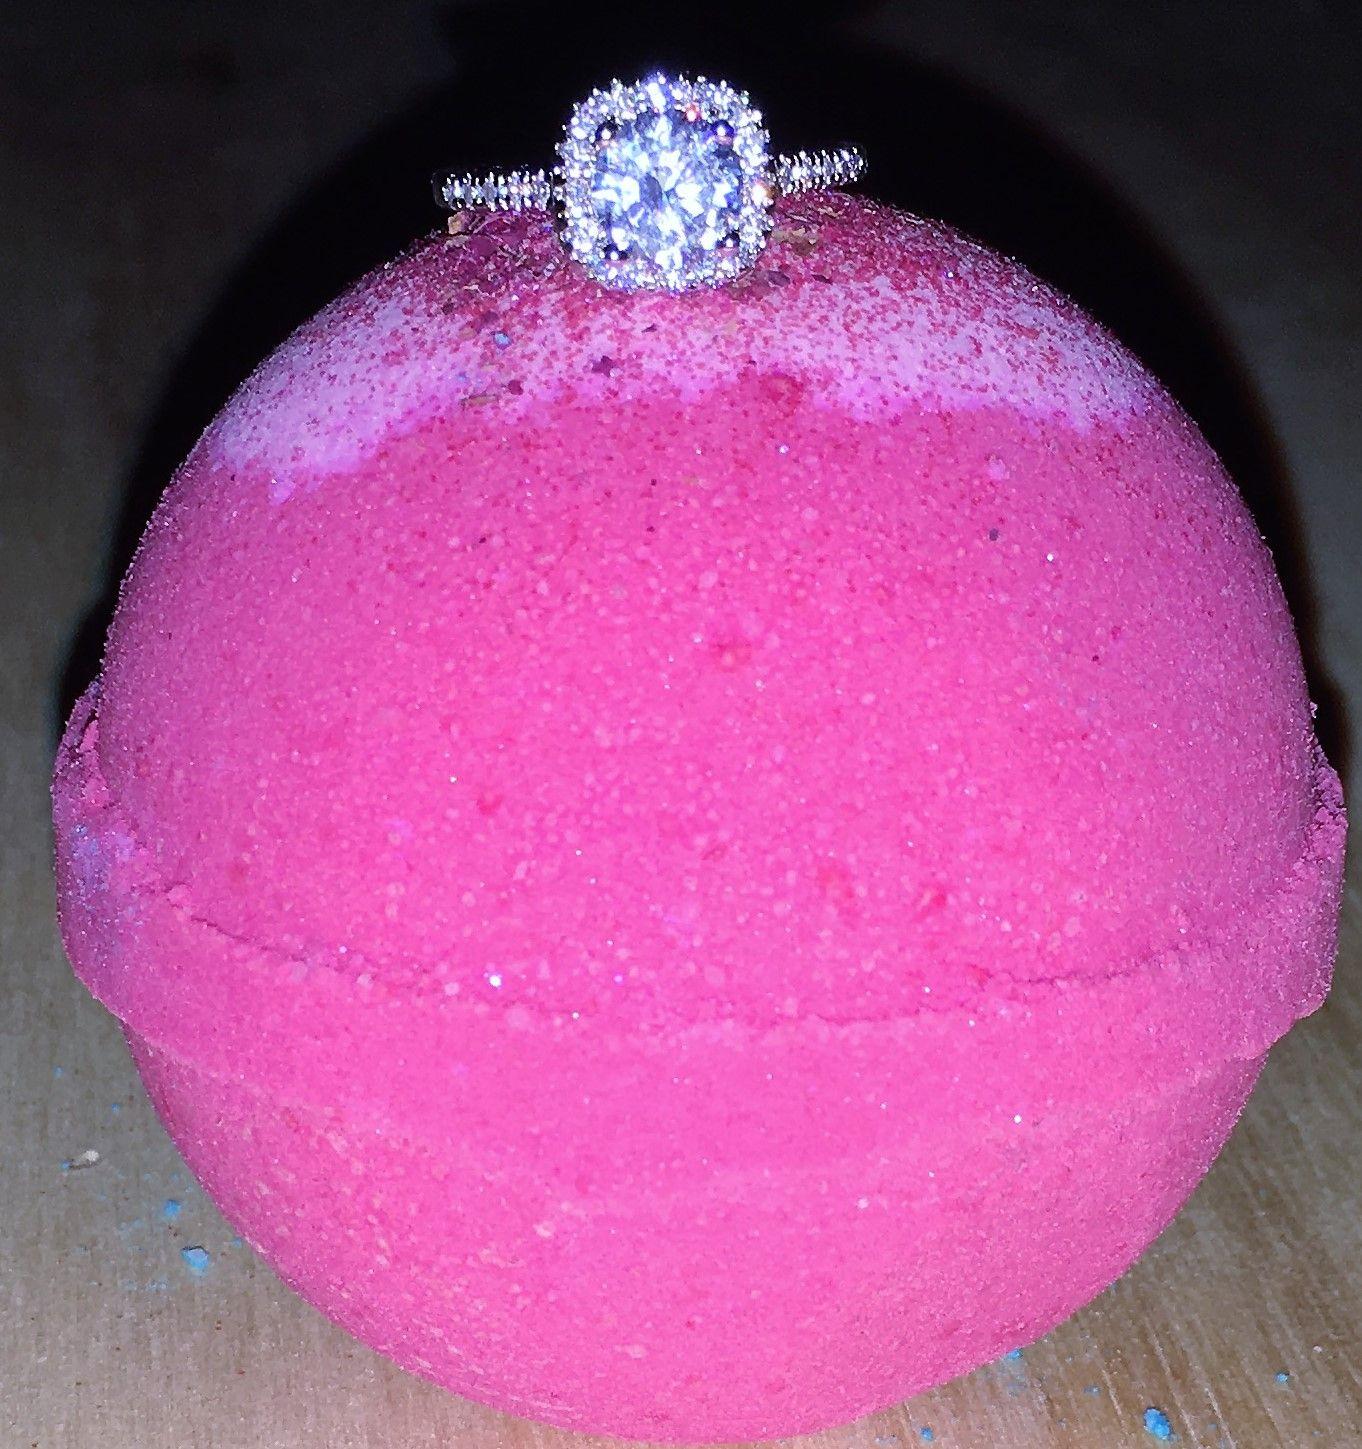 Crazy Love Bath Bomb With Rose Petals And Beautiful Ring Inside Http Www Amorbathbombs Com Jewelry Bath Bombs Bath Bombs With Rings Wholesale Bath Bombs